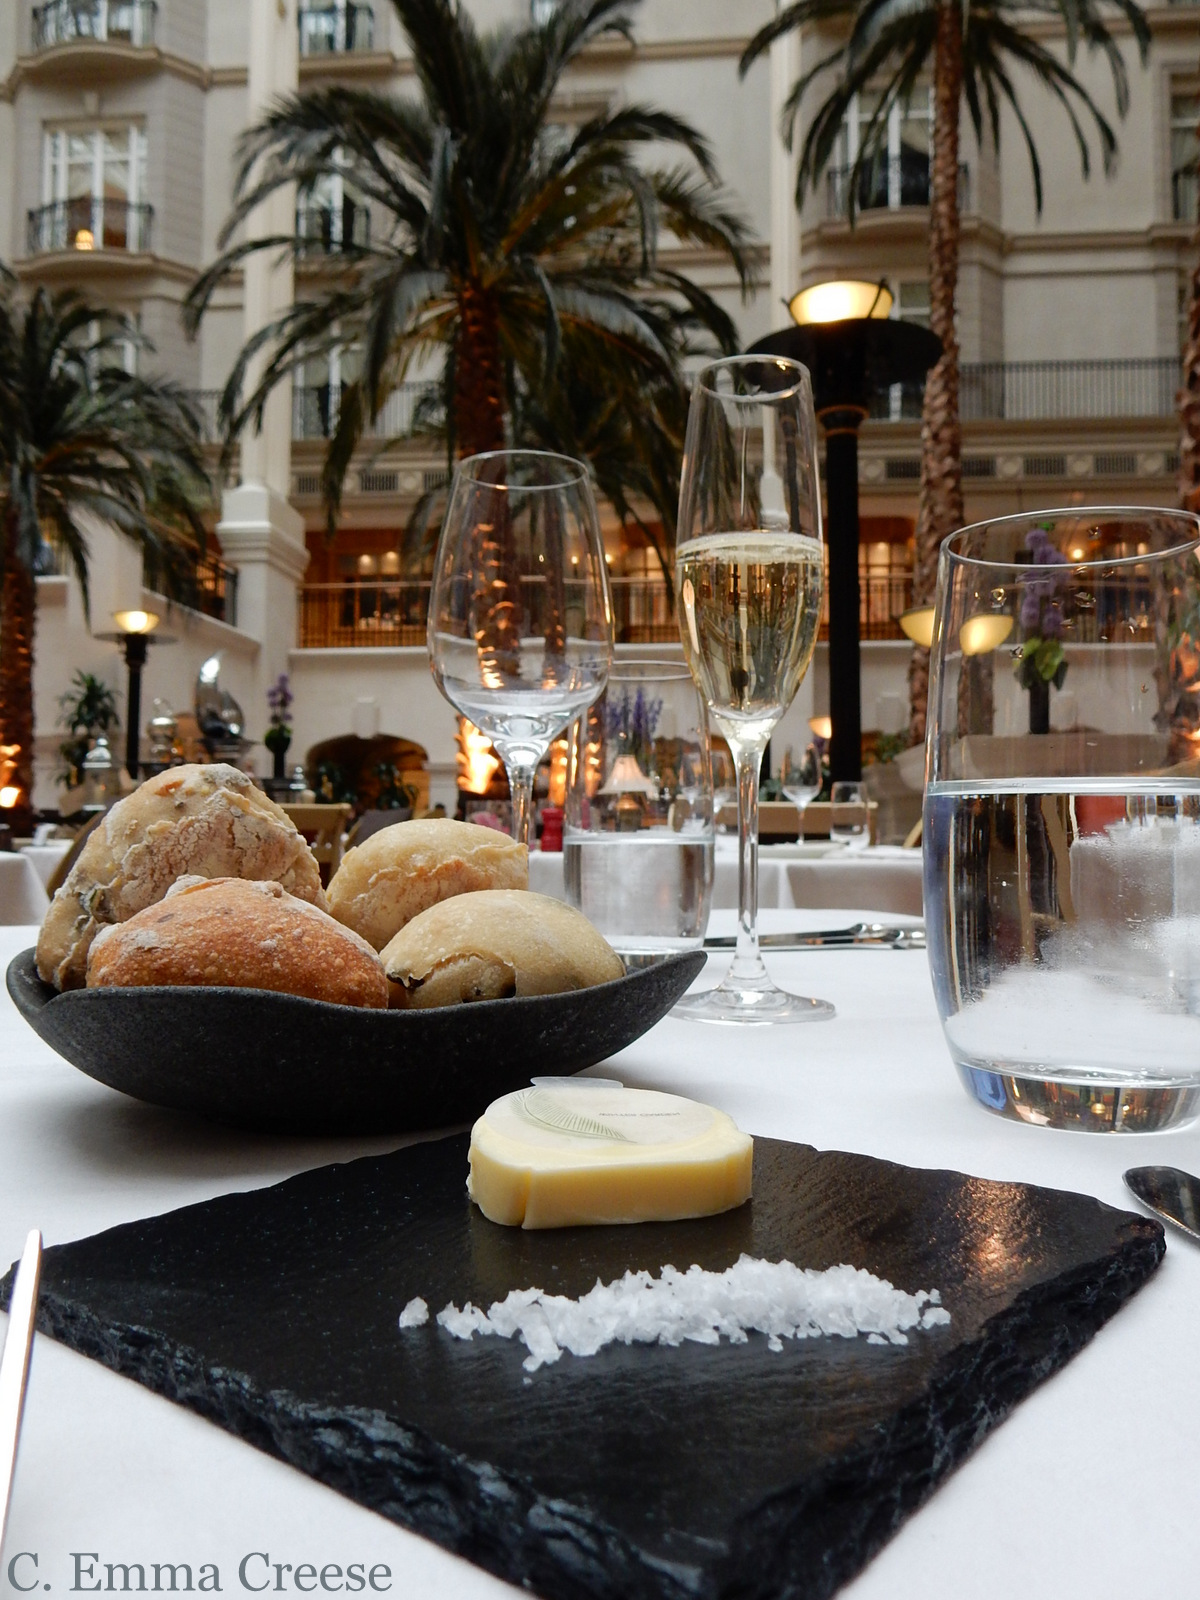 Restaurant Review The Winter Garden Landmark Hotel Adventures of a London Kiwi